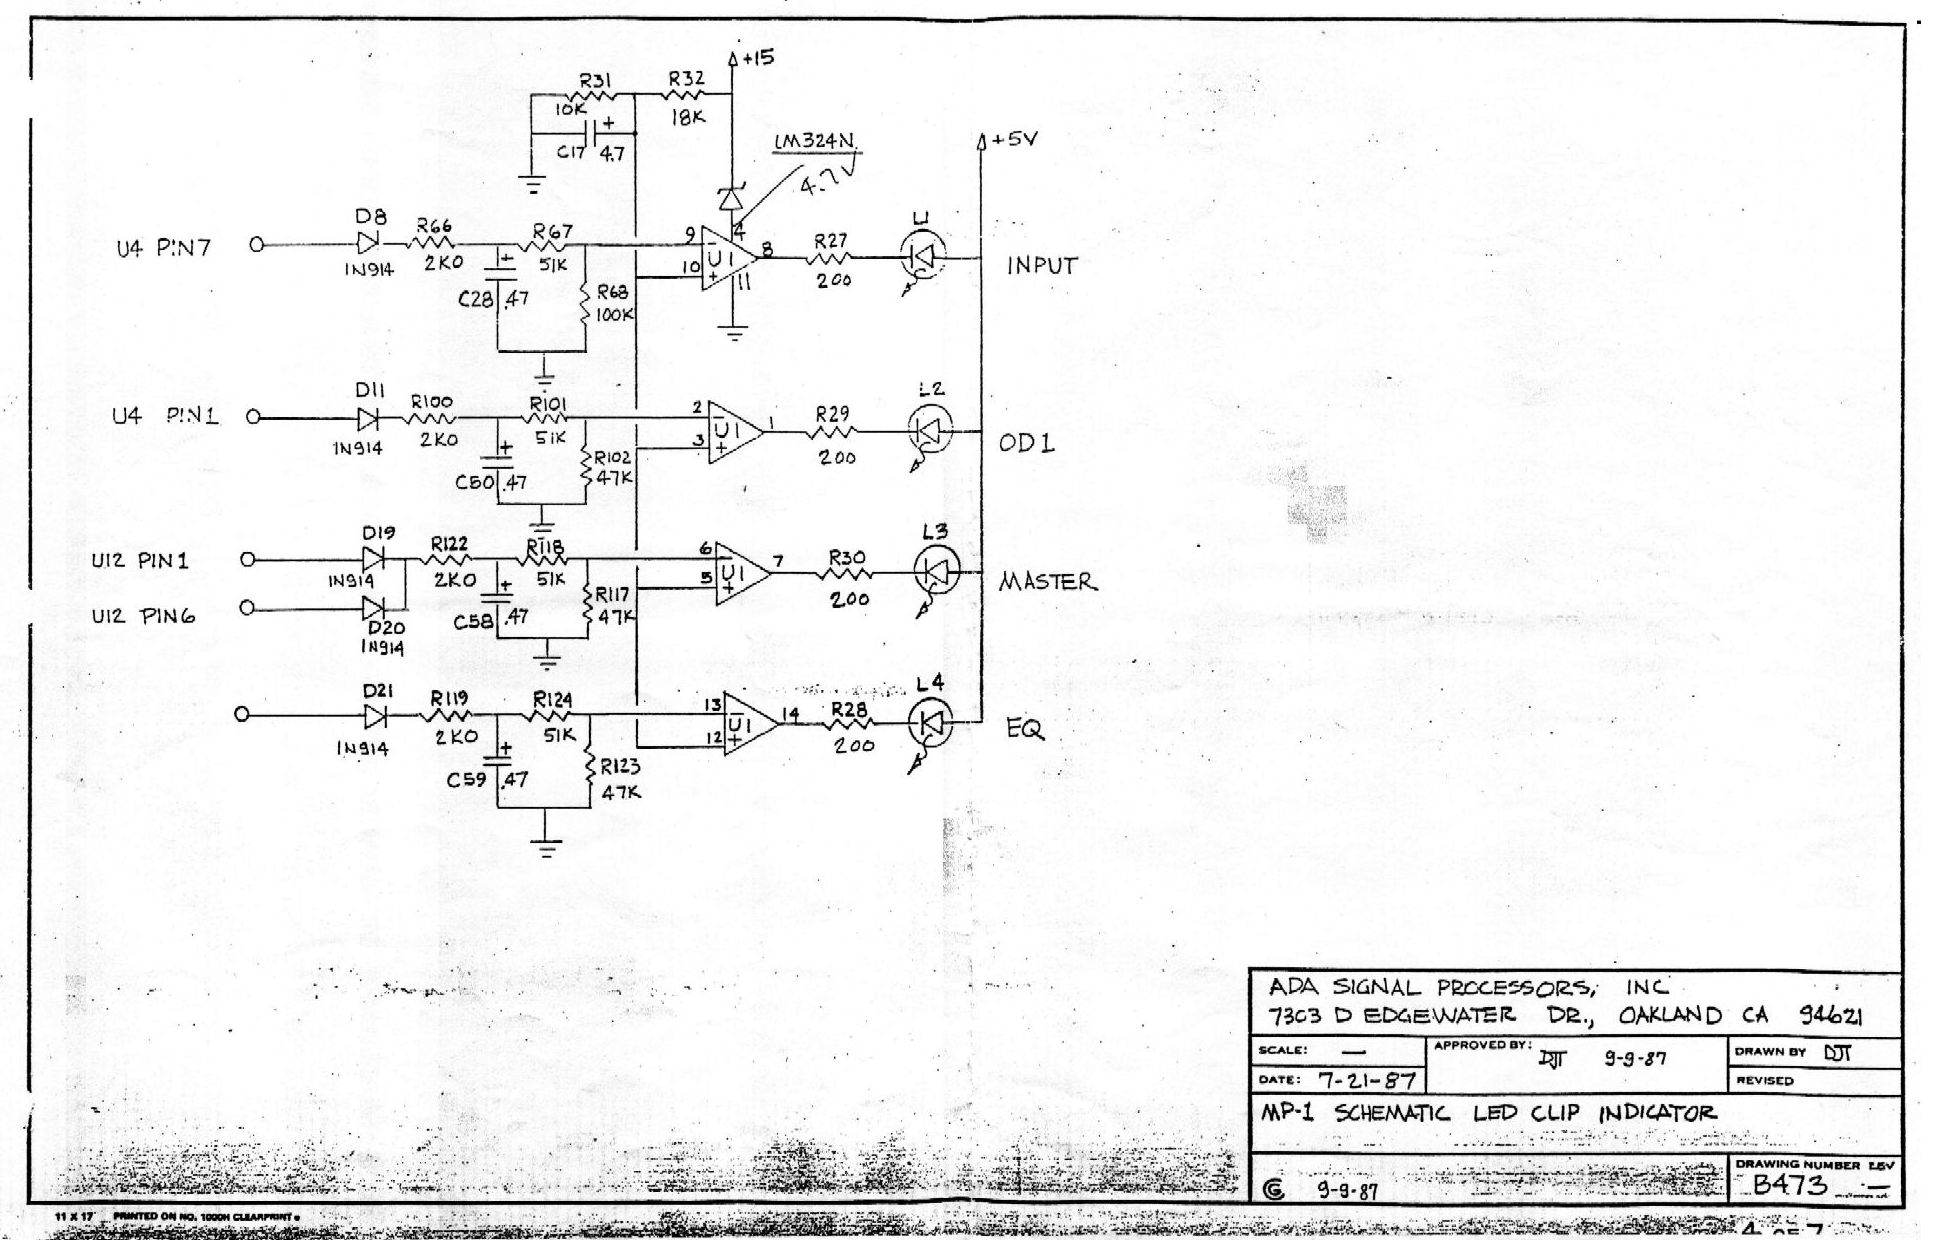 The Vault Schematics And Mods Carvin Mp 1 Stock Tube Board Component Layout Bridgewire Midi To Pcb Schematic